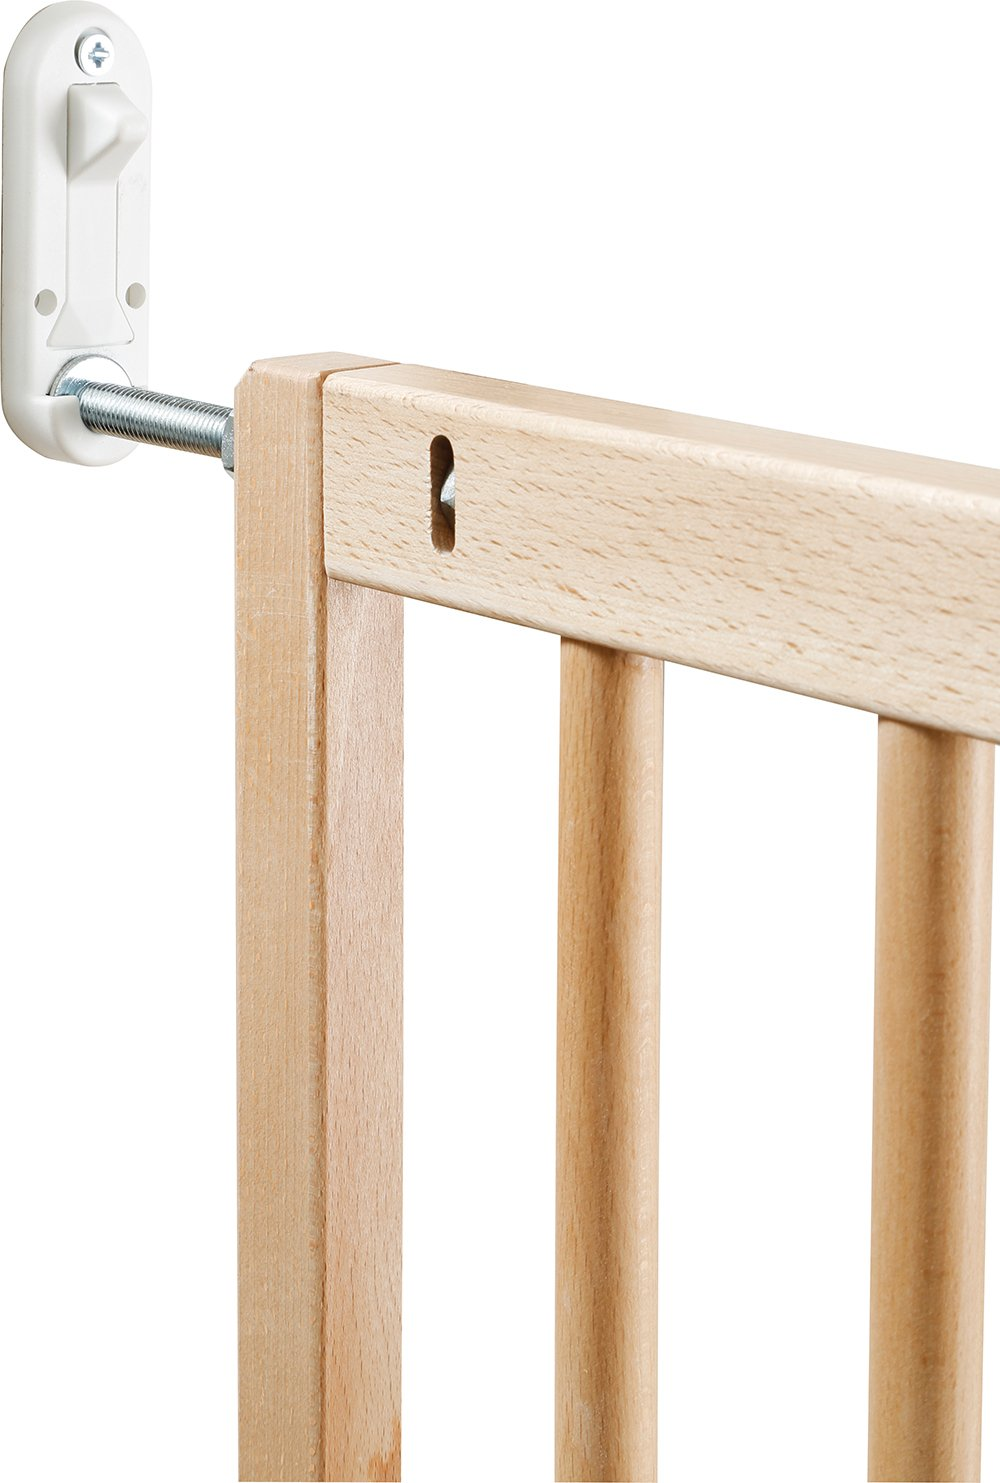 "BabyDan No Trip Beechwood Safety Gate  No Trip Safety Gate made from 100% European beechwood.  Opening measurements: 72 - 78,5 cm (28.4"" - 30.9""). Features NO TRIP Bar so ideal fro tops of stairs and busy doorways Quick to install and features adult operated quick relase wall fittings 2"